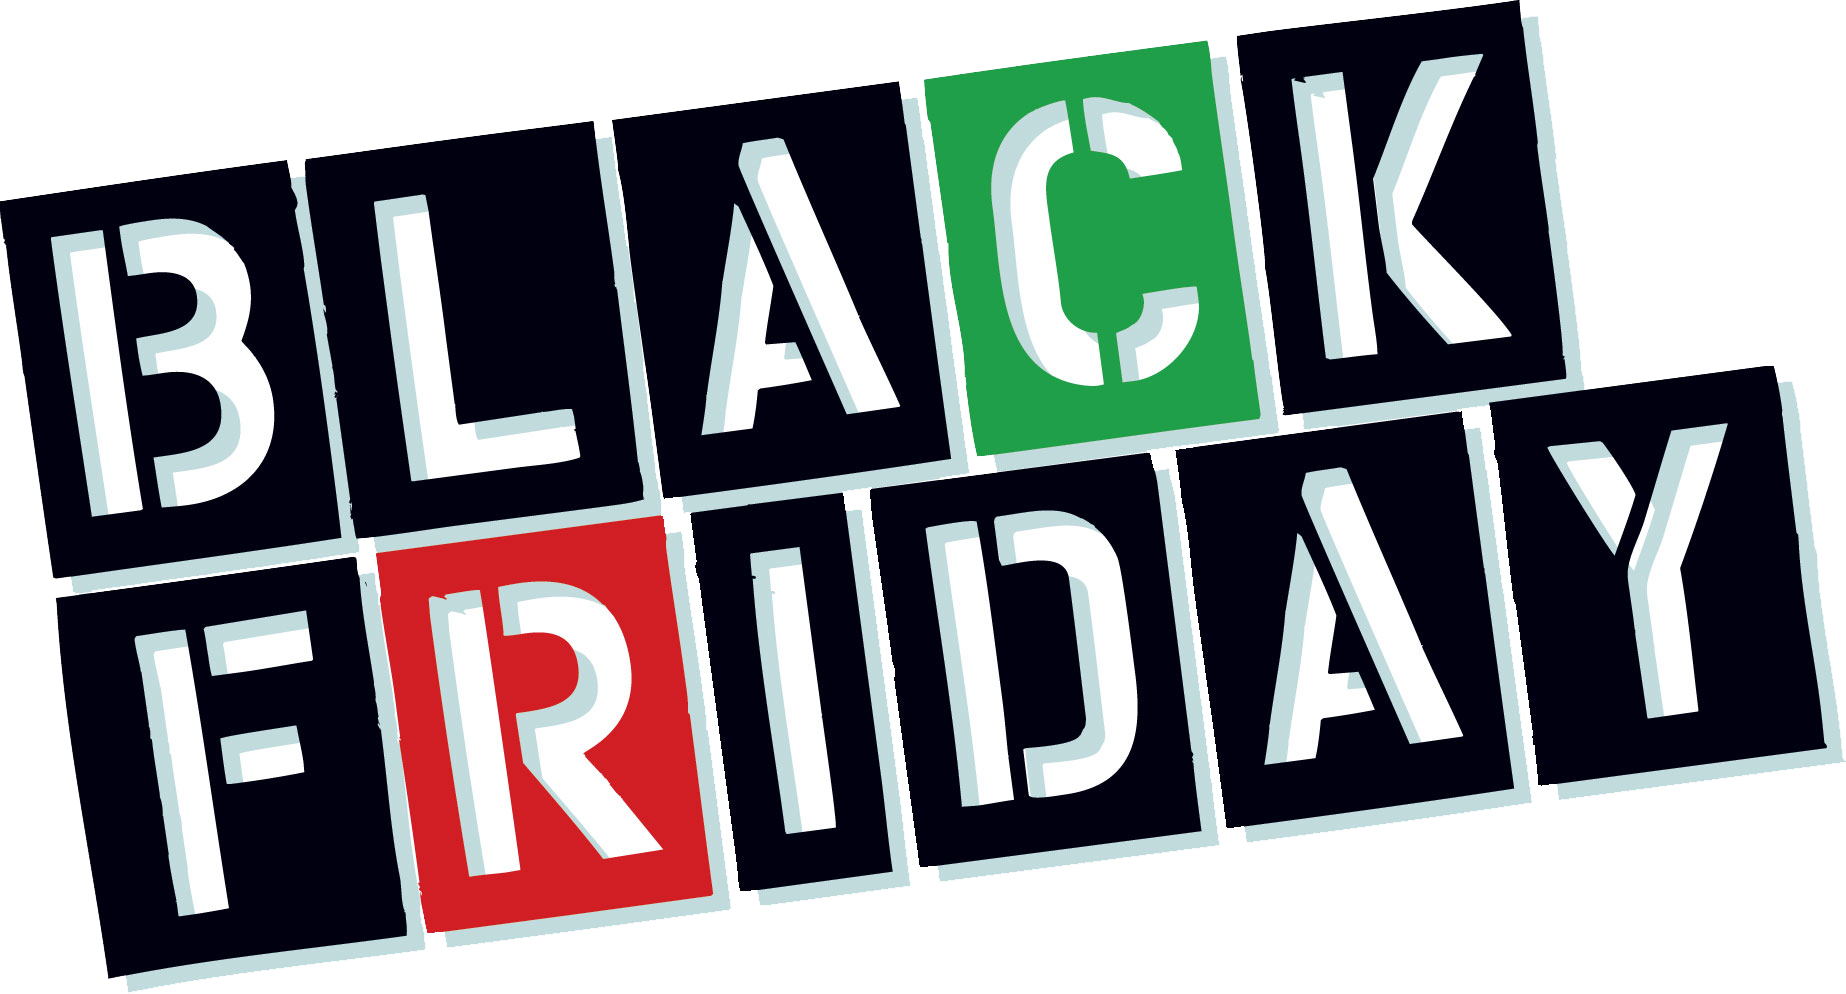 Black Friday PNG HD - Black Friday PNG